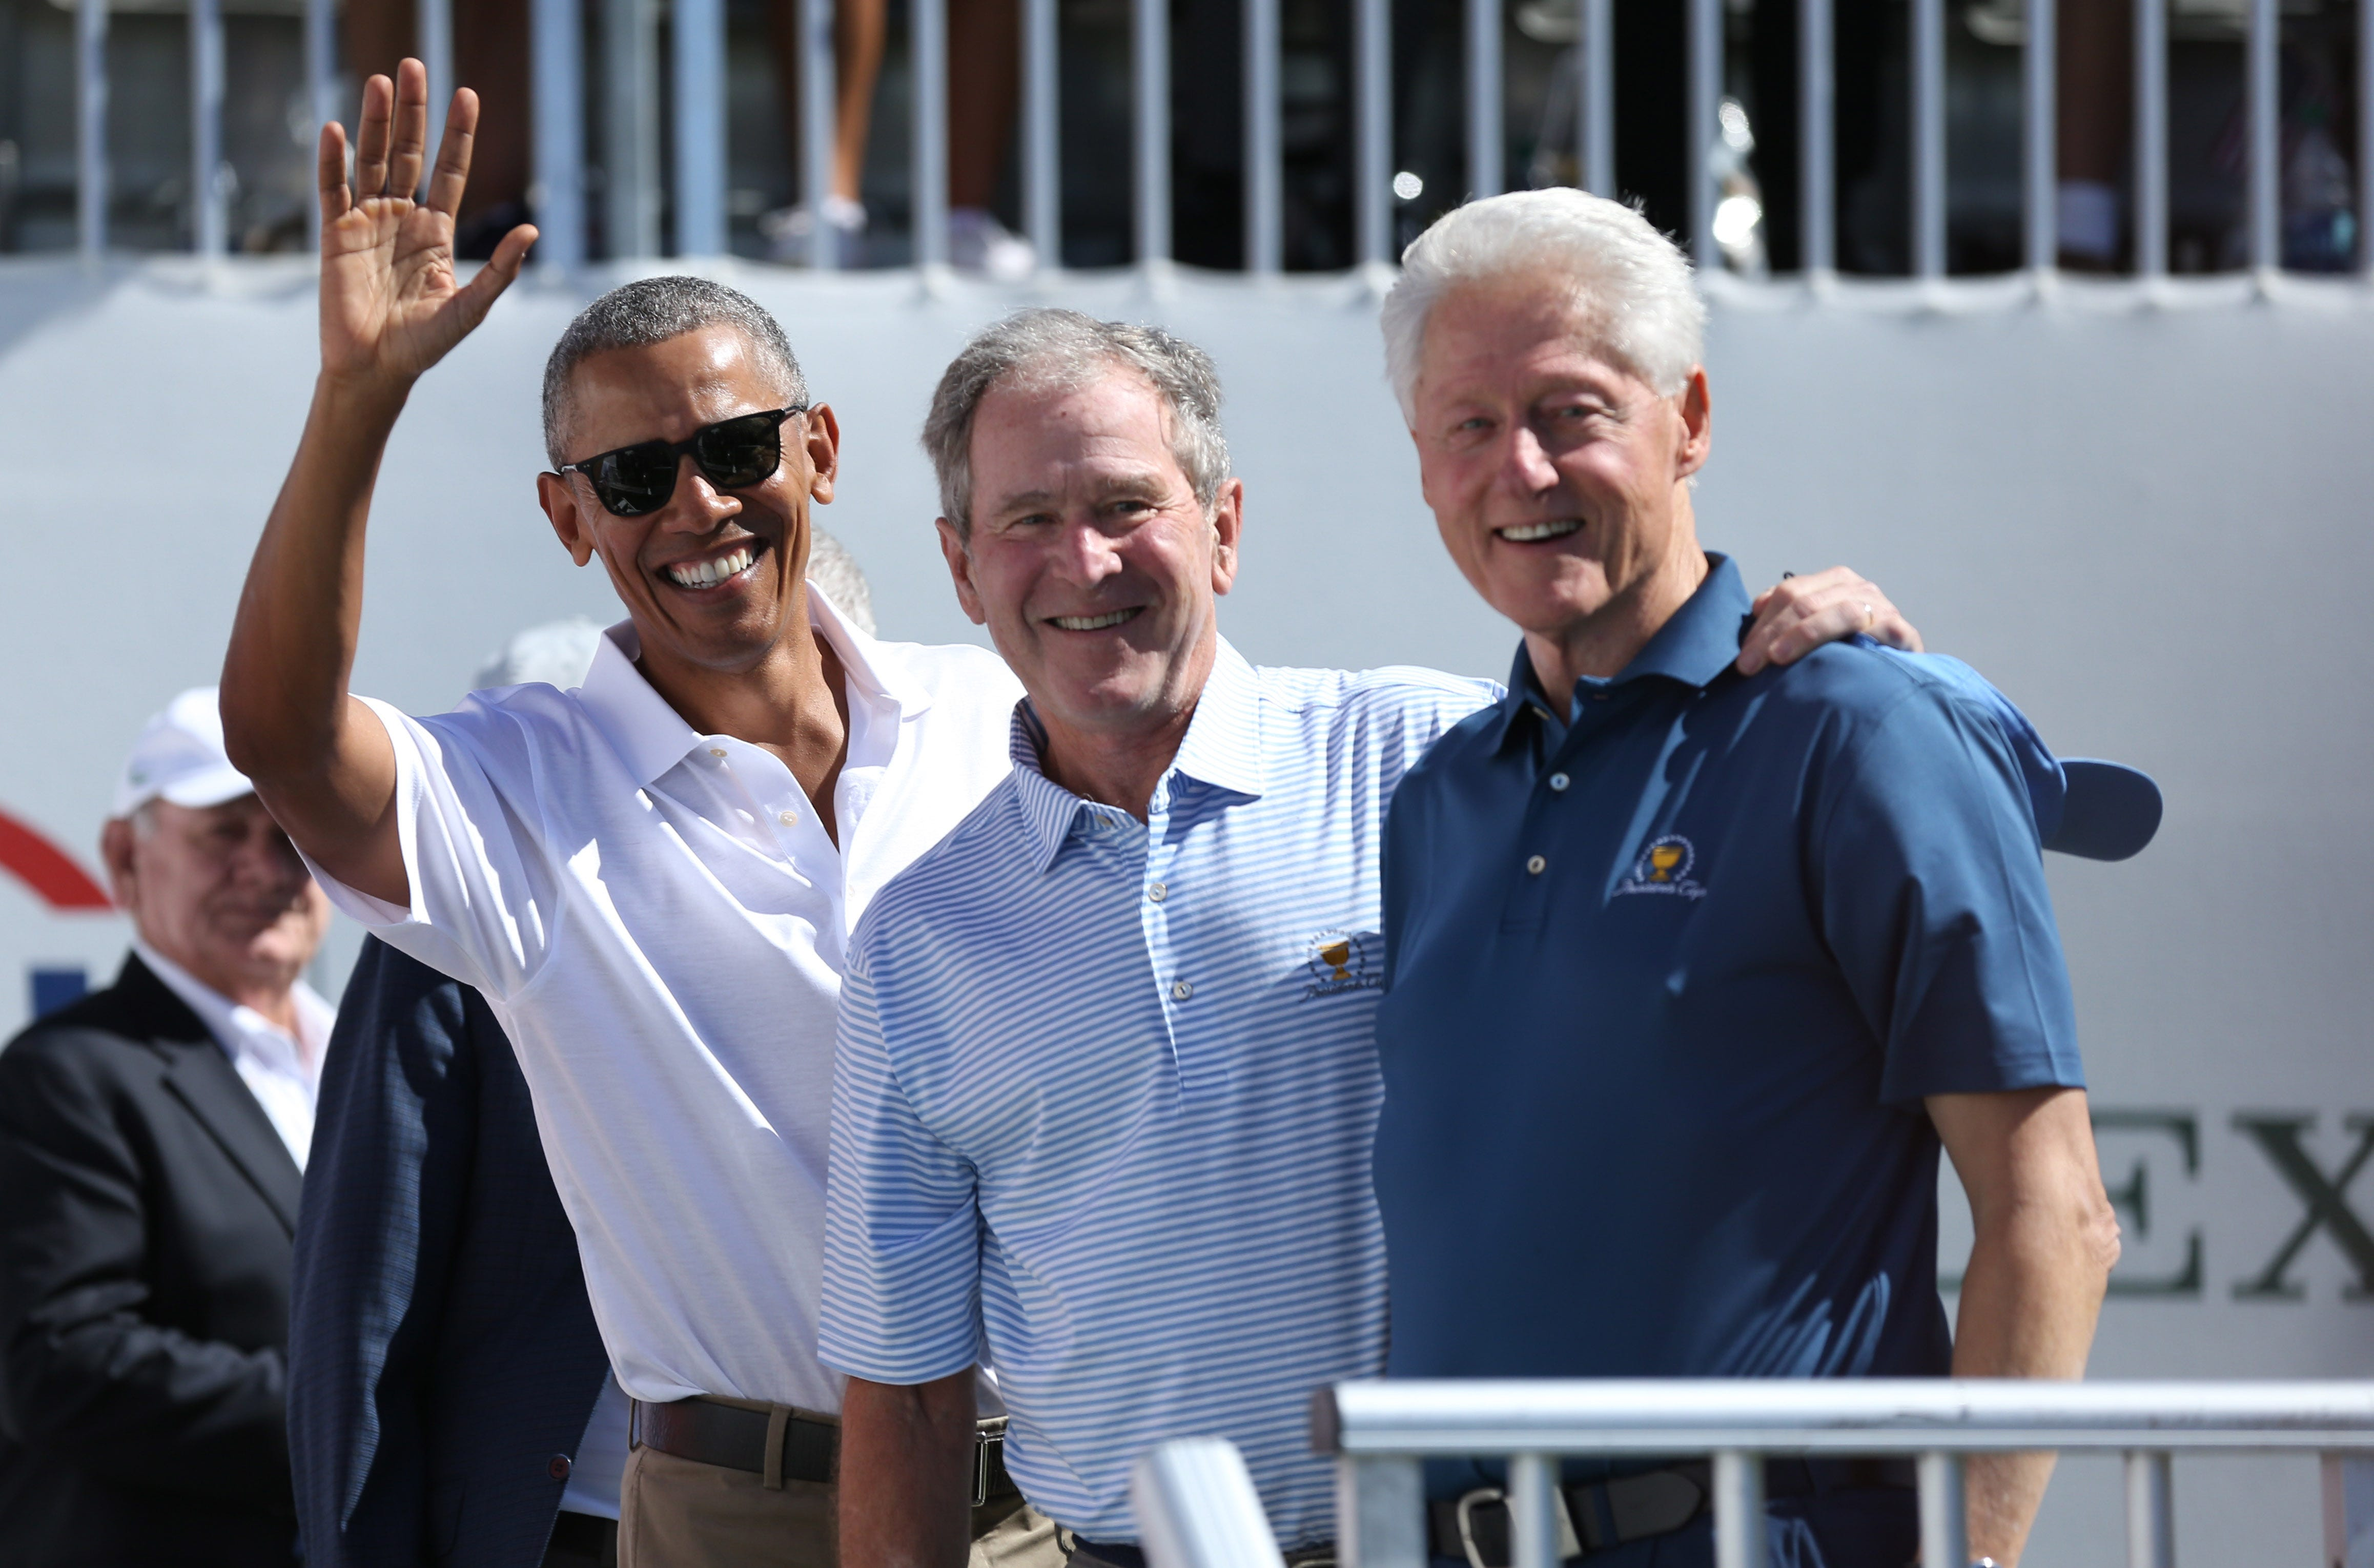 Former U.S. Presidents, from left, Barack Obama and George W. Bush and Bill Clinton smile during the first round foursomes match of The President's Cup golf tournament at Liberty National Golf Course, Sept. 28, 2017, in Jersey City, N.J.